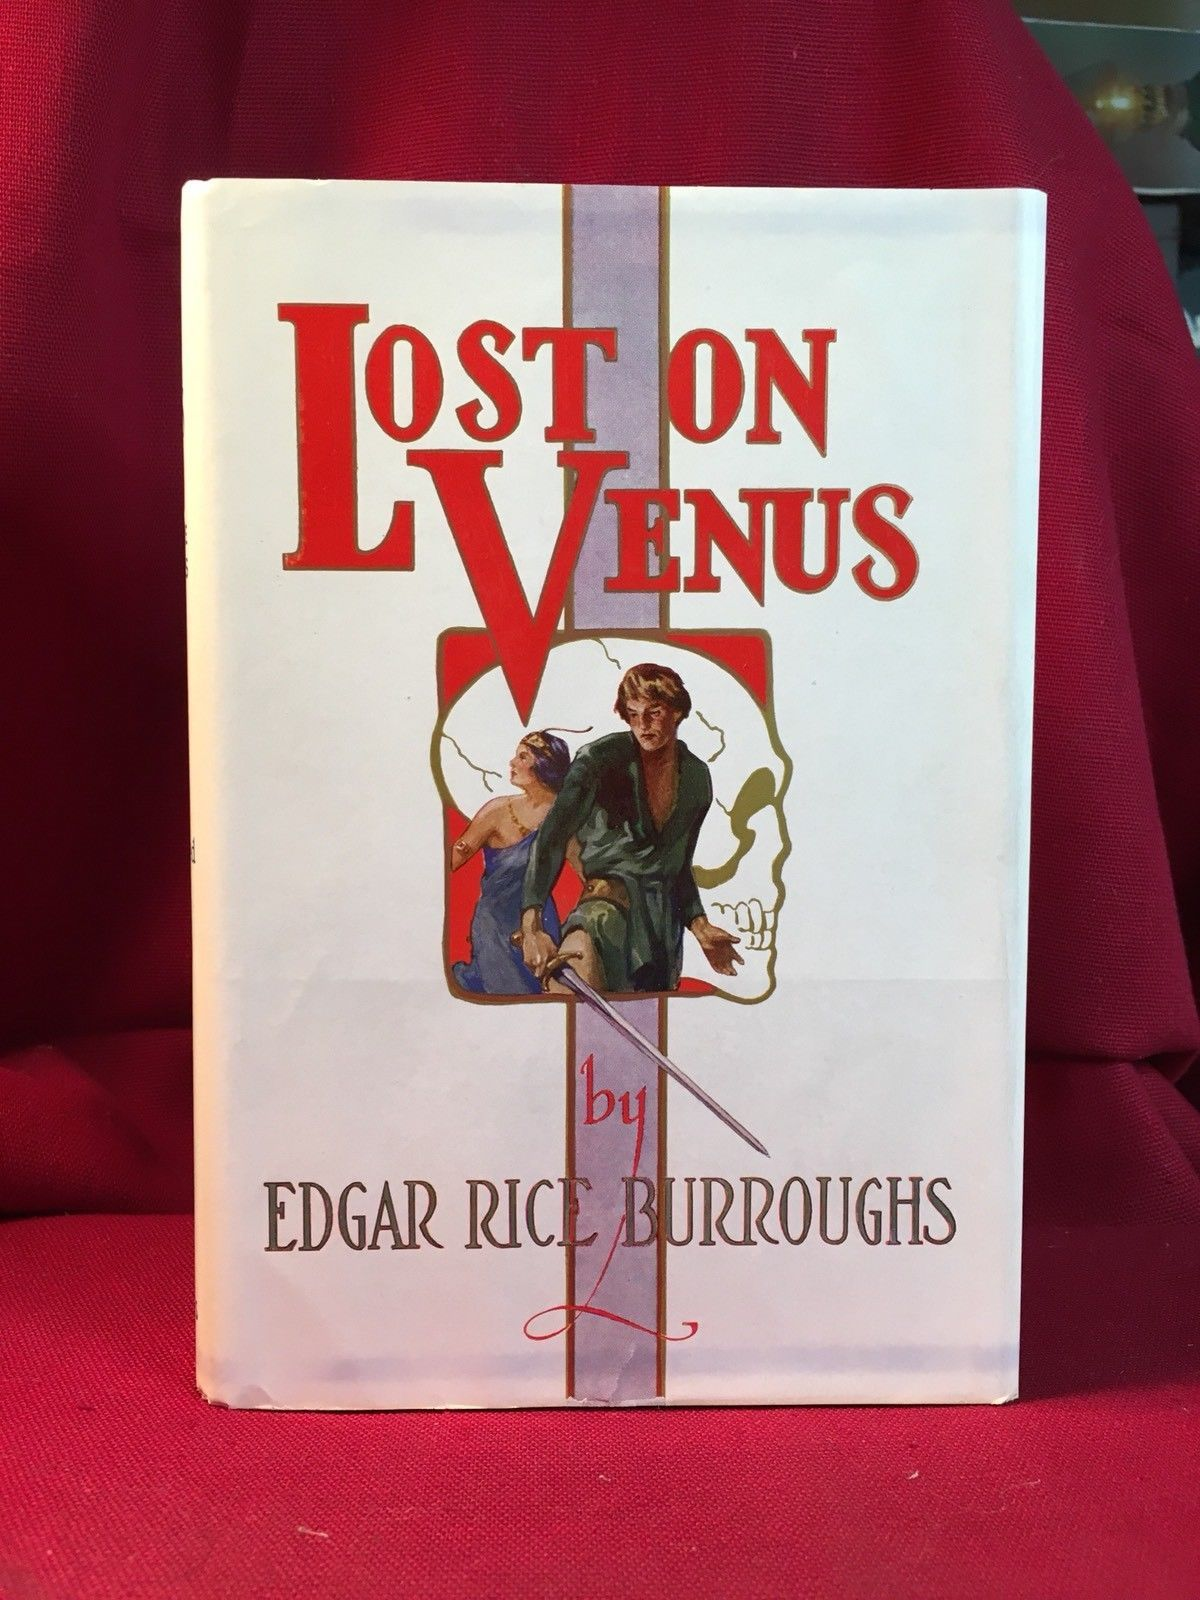 LOST ON VENUS - Edgar Rice Burroughs - 1st Edition in Dust Jacket